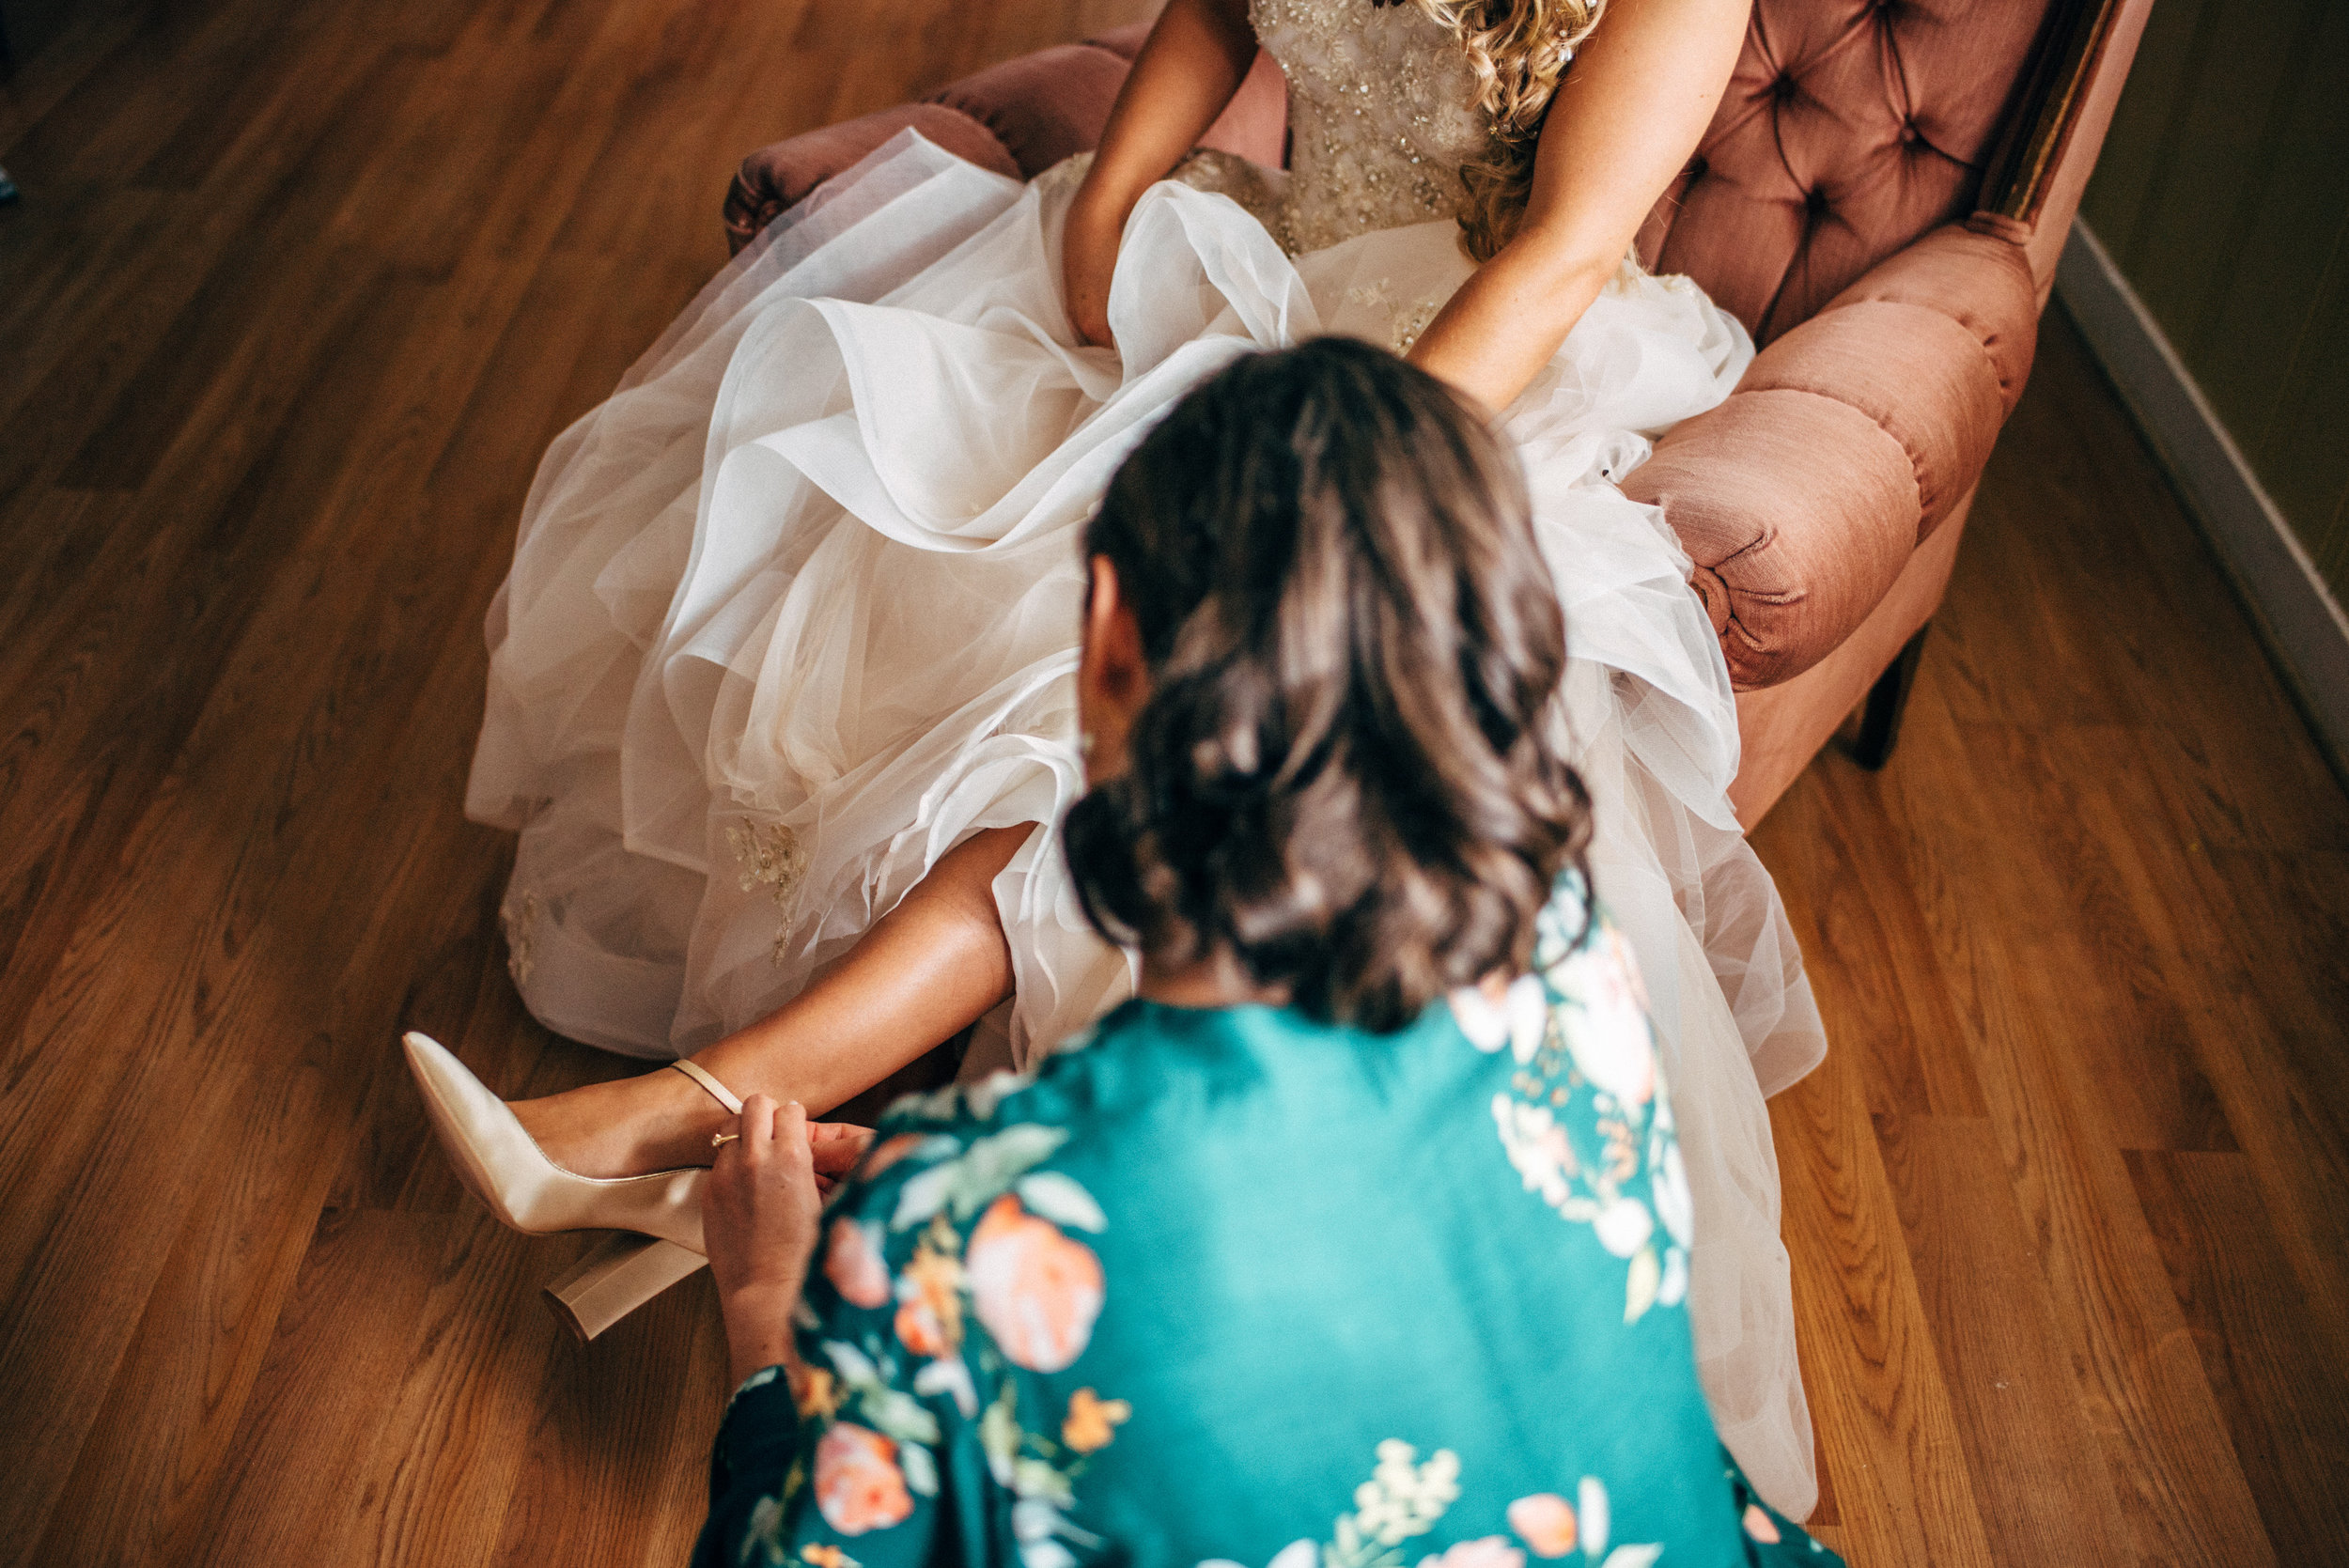 bridesmaid putting shoe on bride's foot before wedding